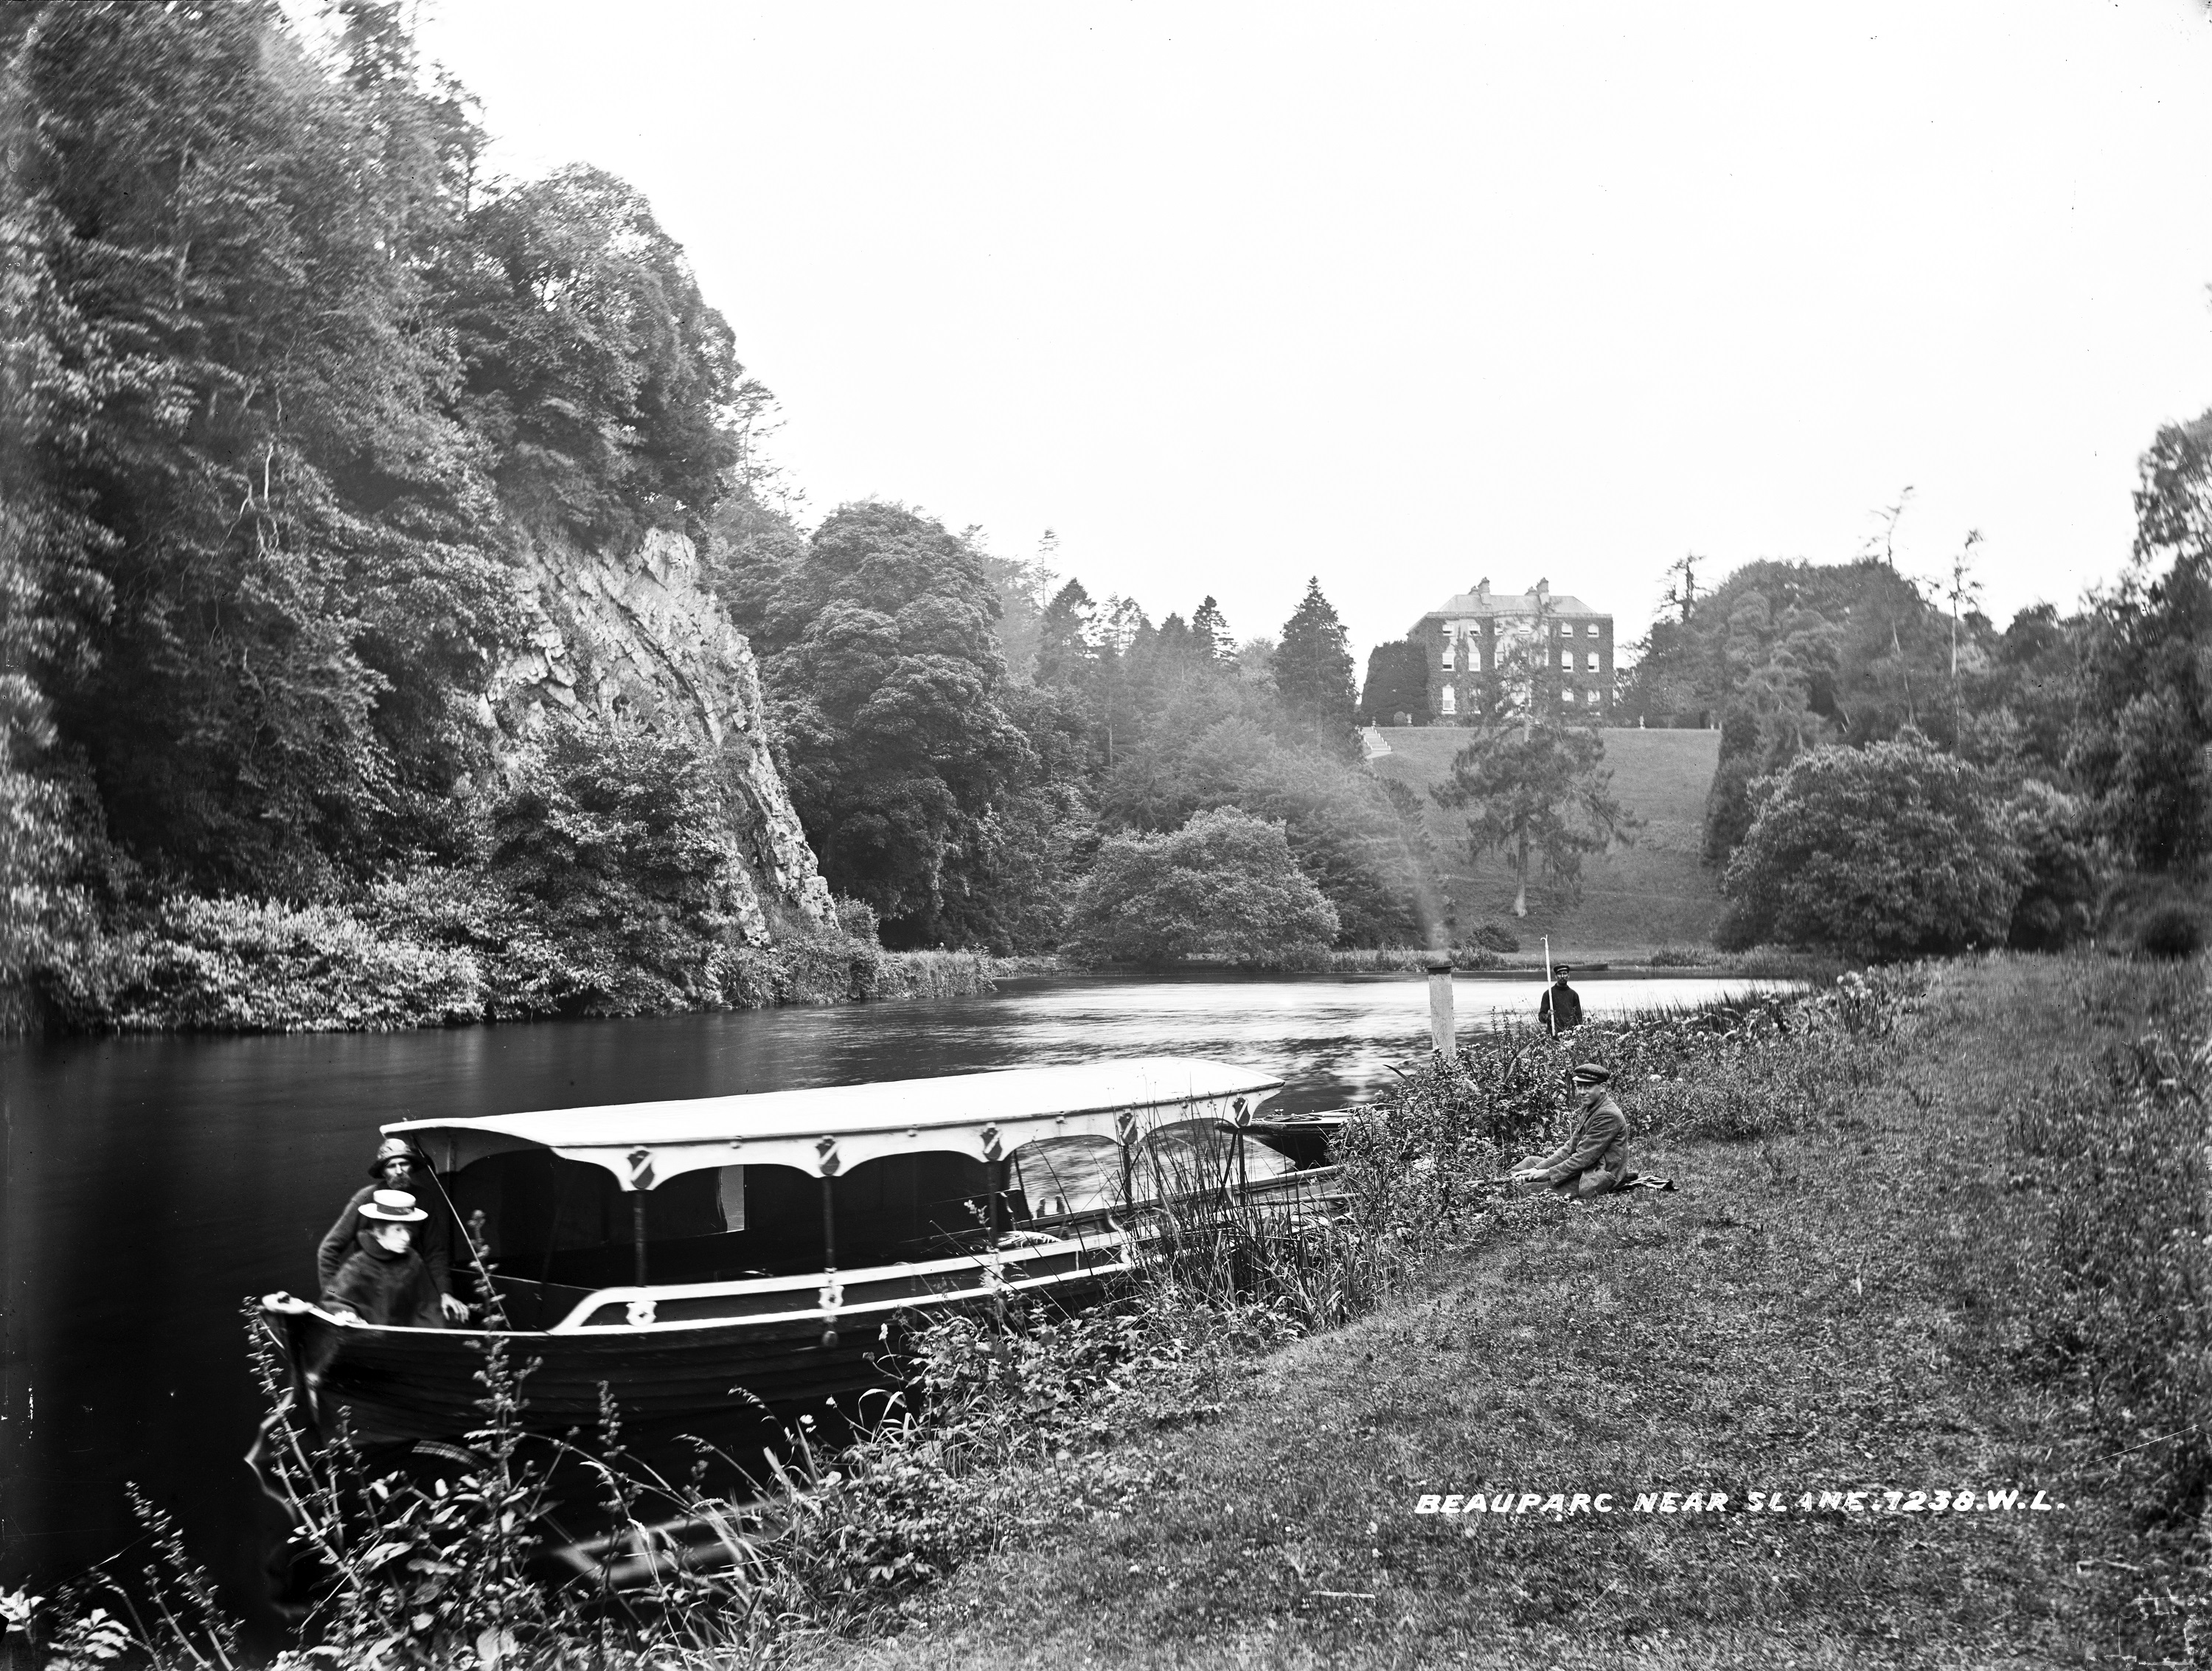 Beautiful Beauparc, boats and boat boy, by the Boyne.